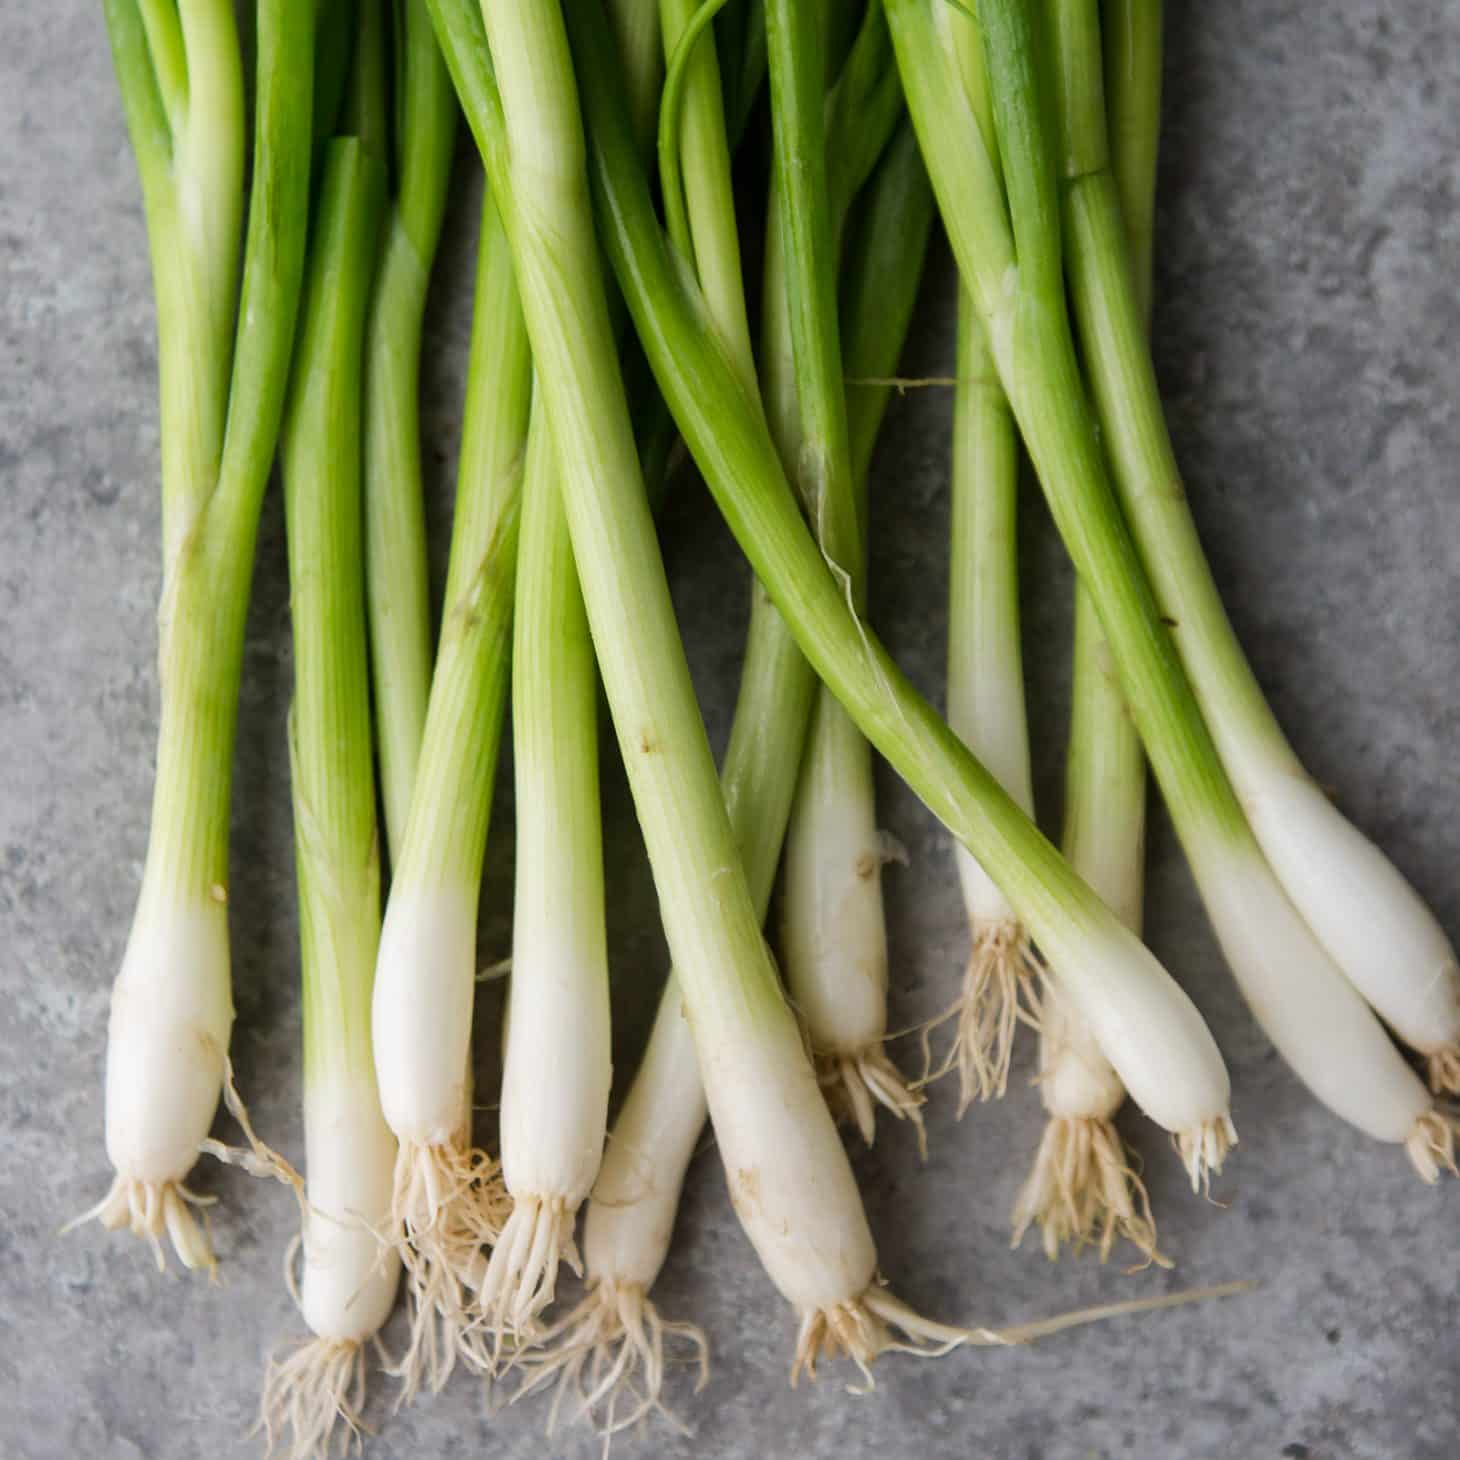 Scallions - Explore an Ingredient - Naturally Ella